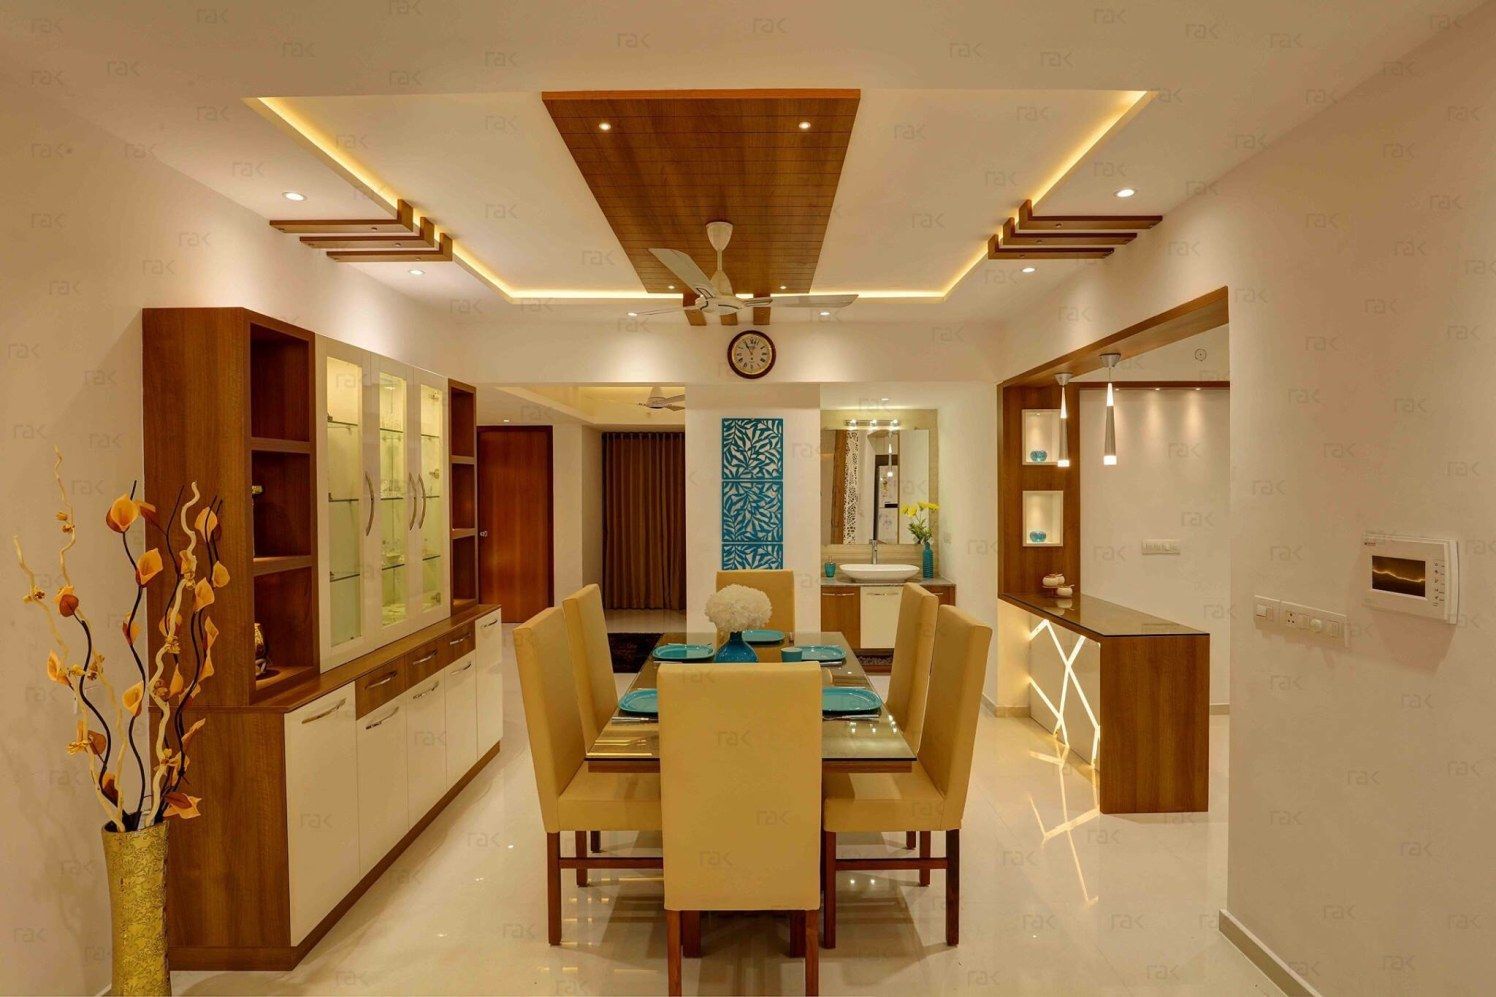 Amazing Dining Room Layout by Right Choice Enterprises Contemporary | Interior Design Photos & Ideas